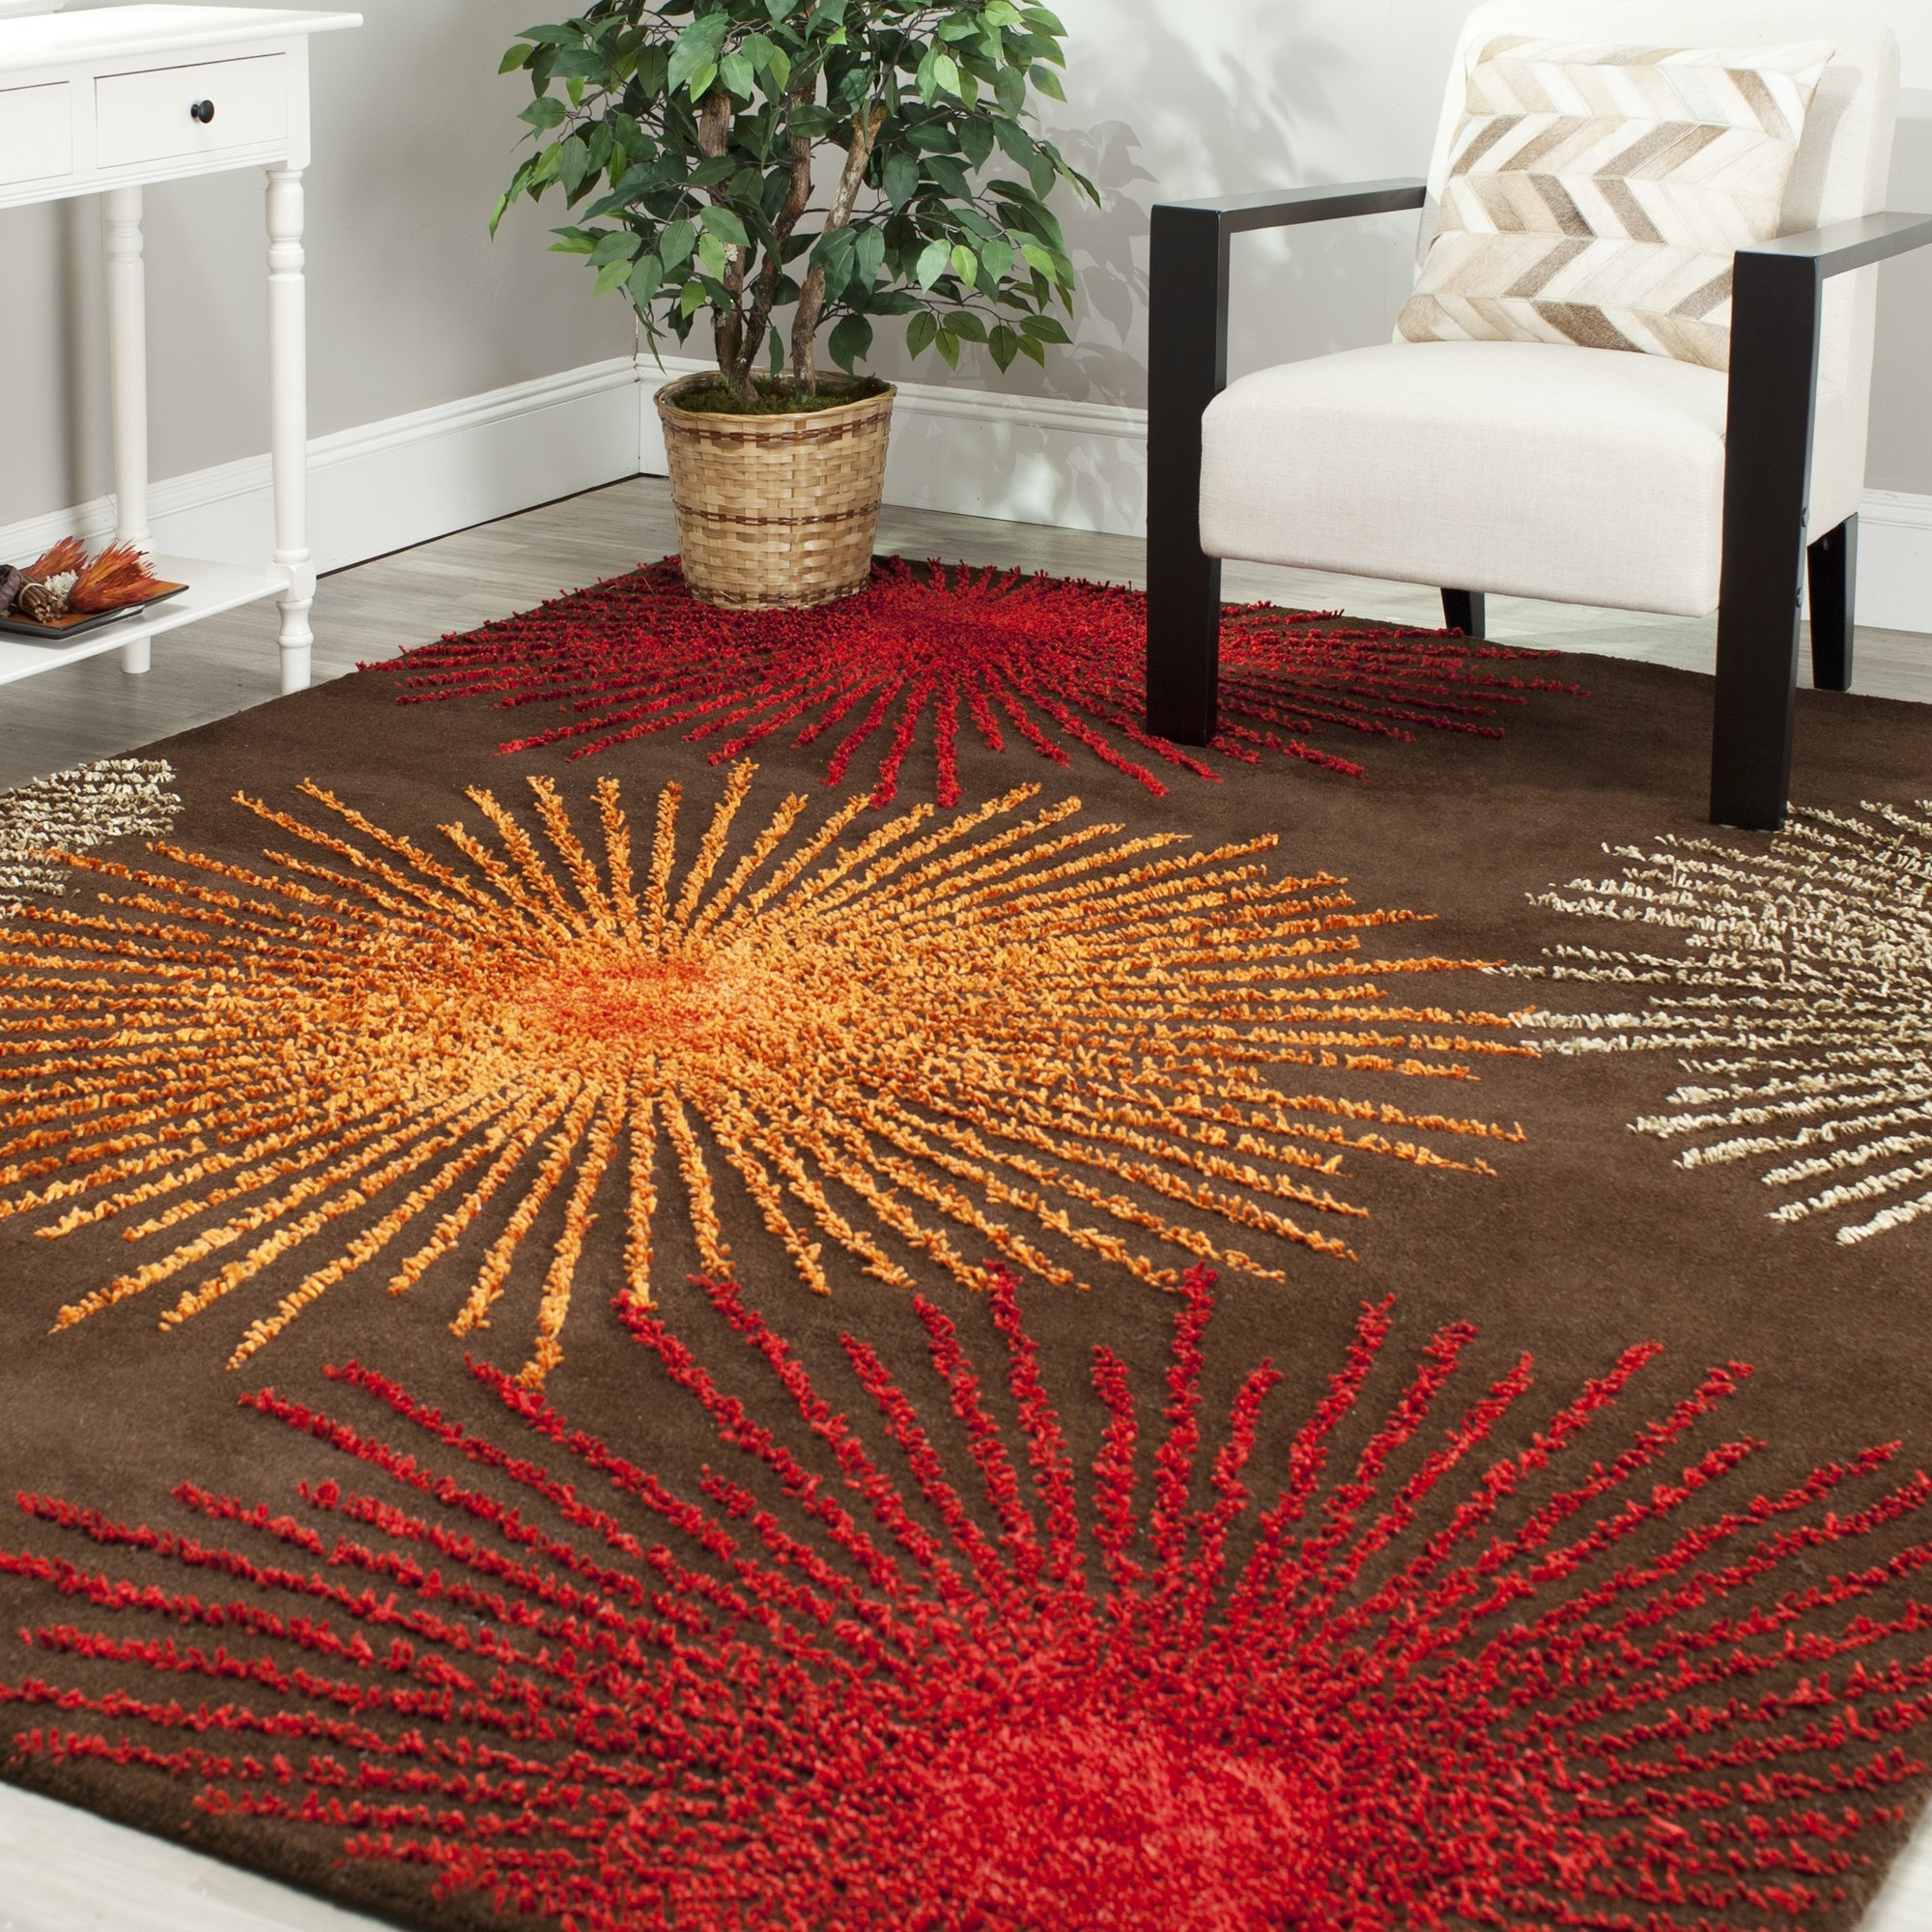 Schaub Brown Handmade Area Rug Reviews Allmodern With Brown Orange Rugs (View 9 of 15)